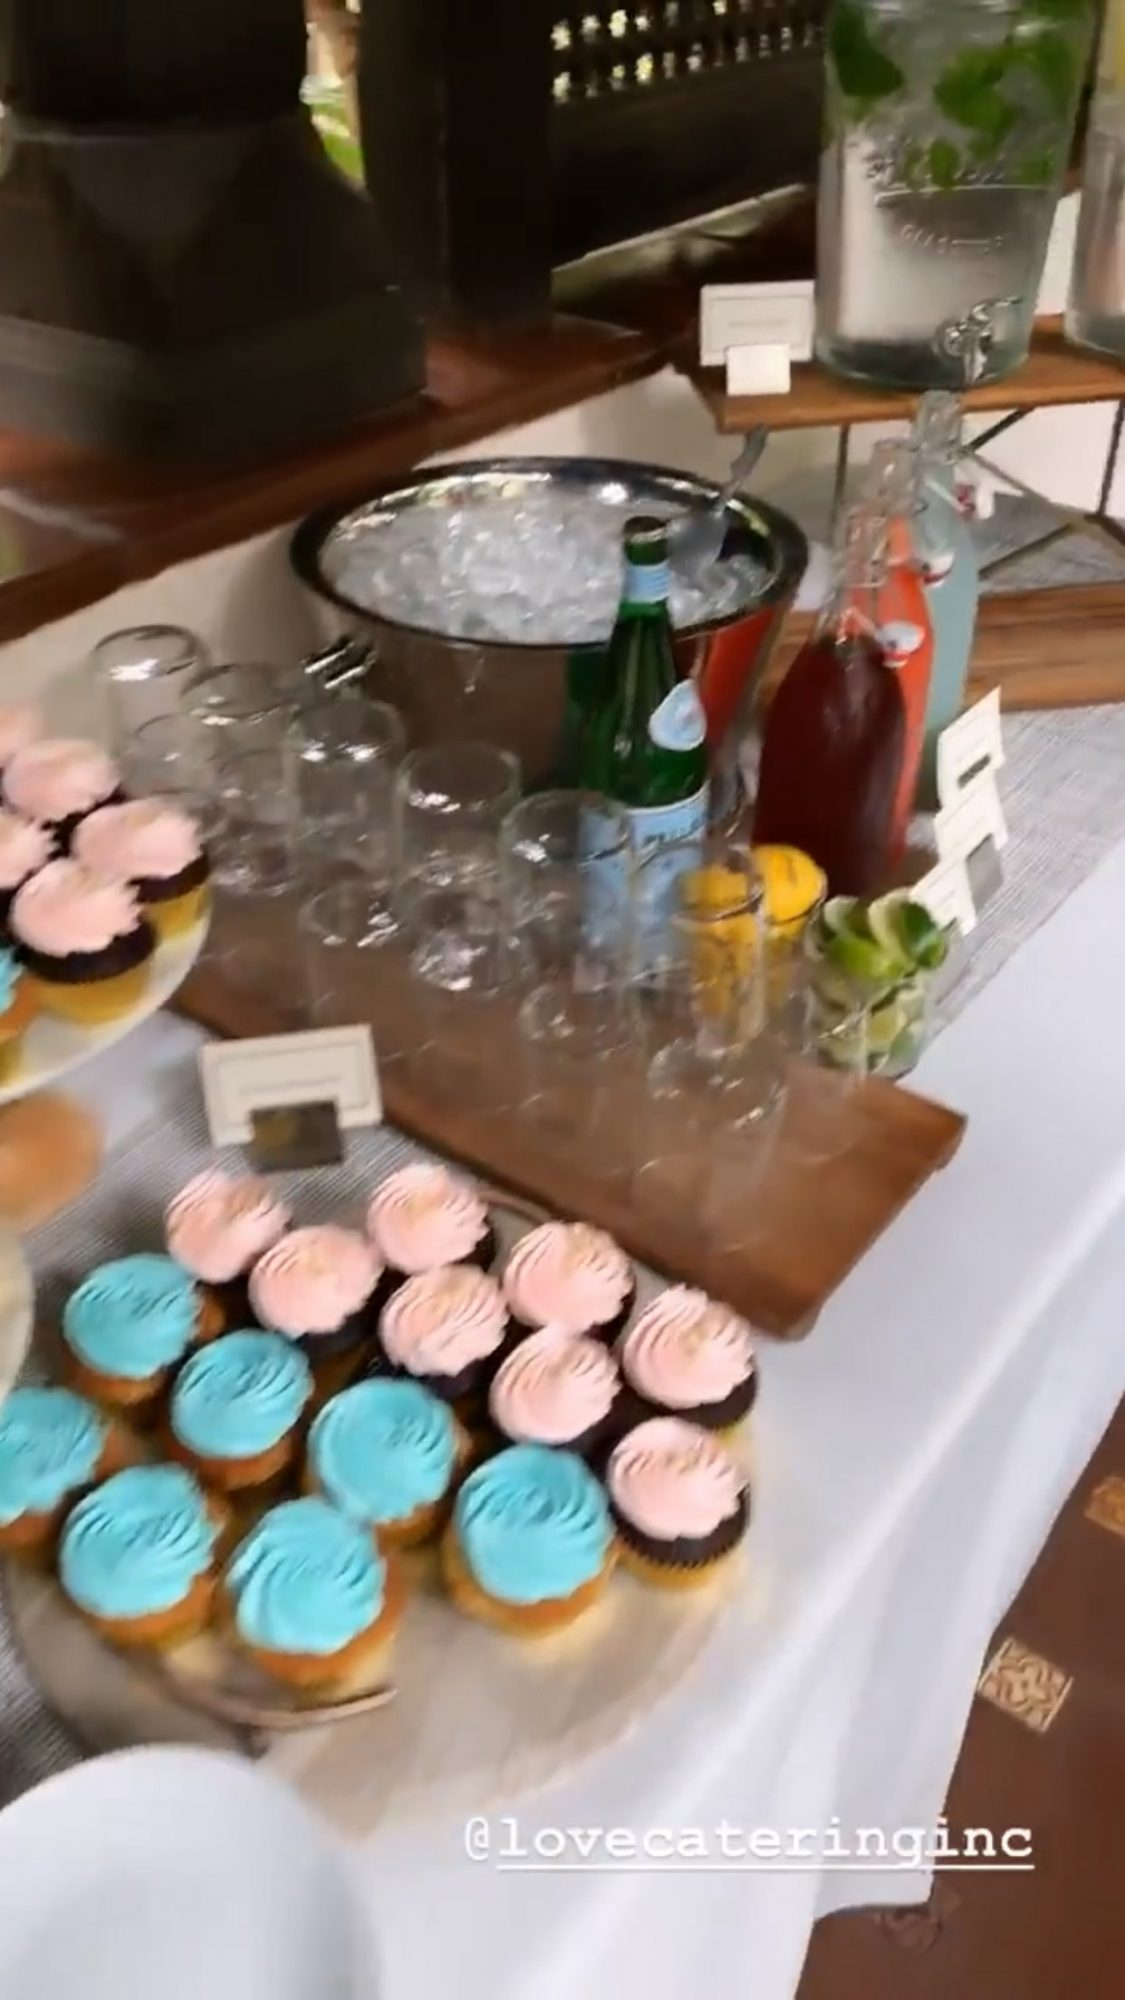 Johnny Glaecki and Alaina Marie Meyer gender reveal party